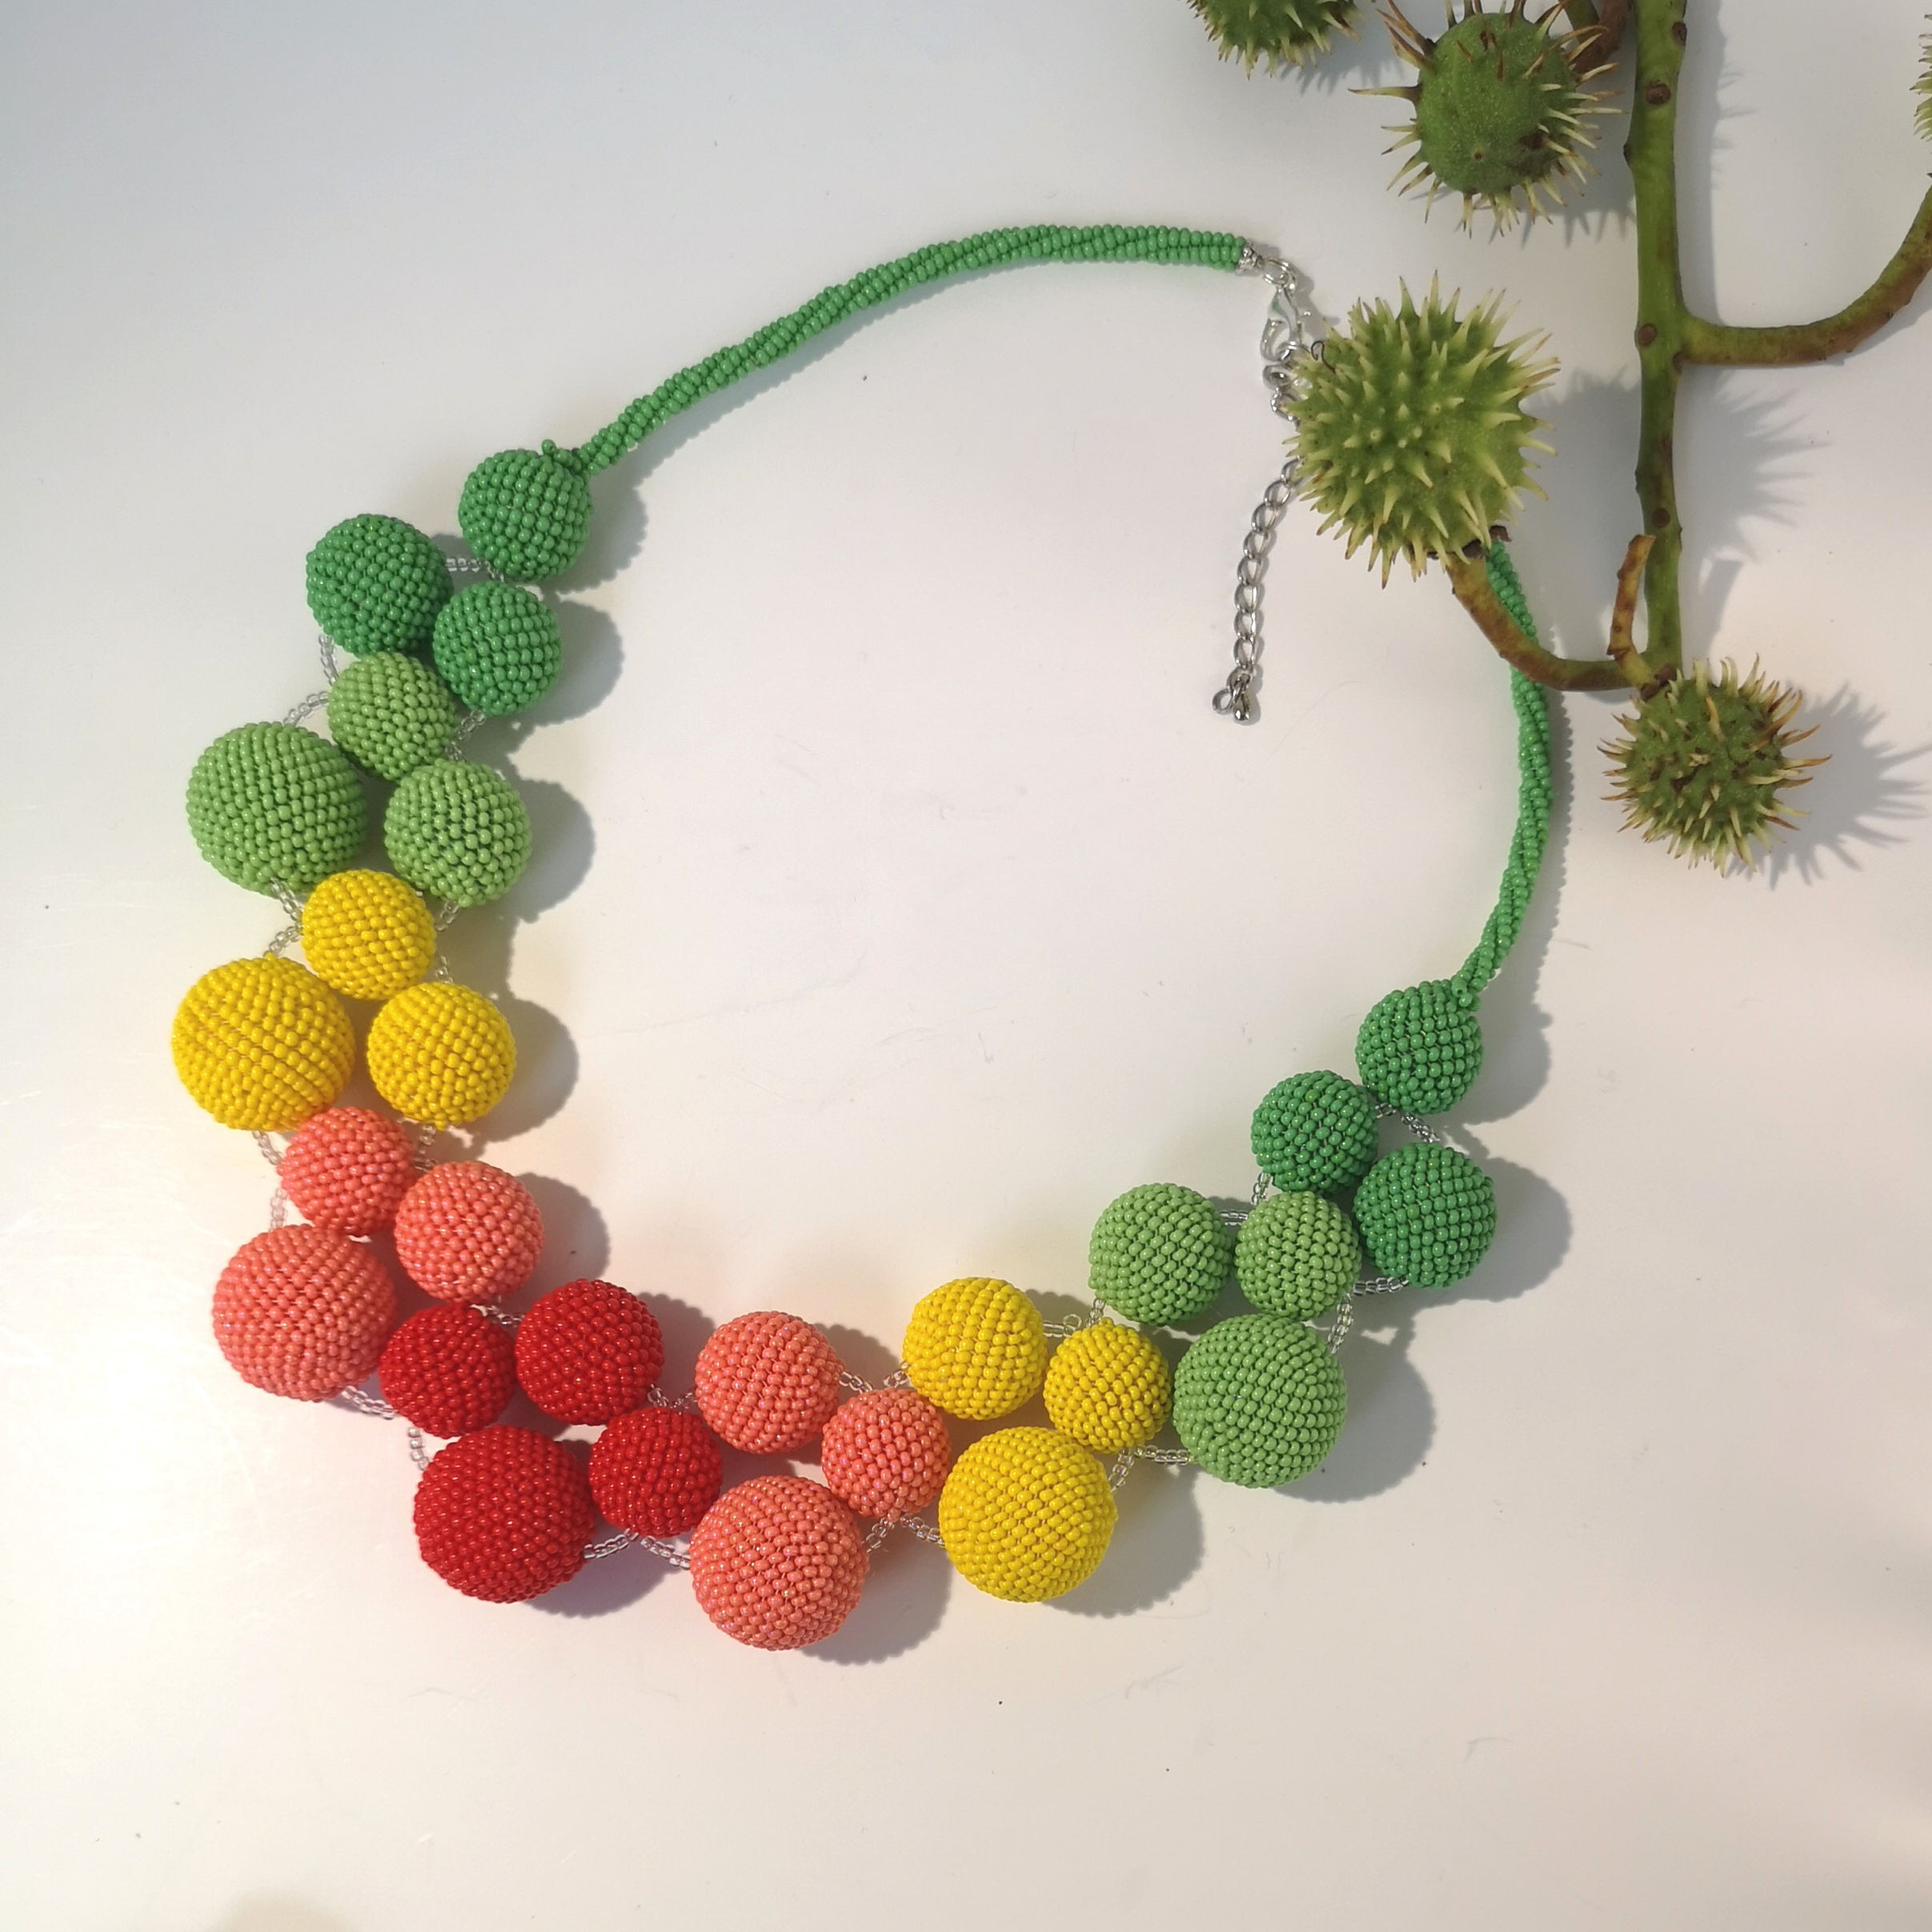 seed beads necklace (6)